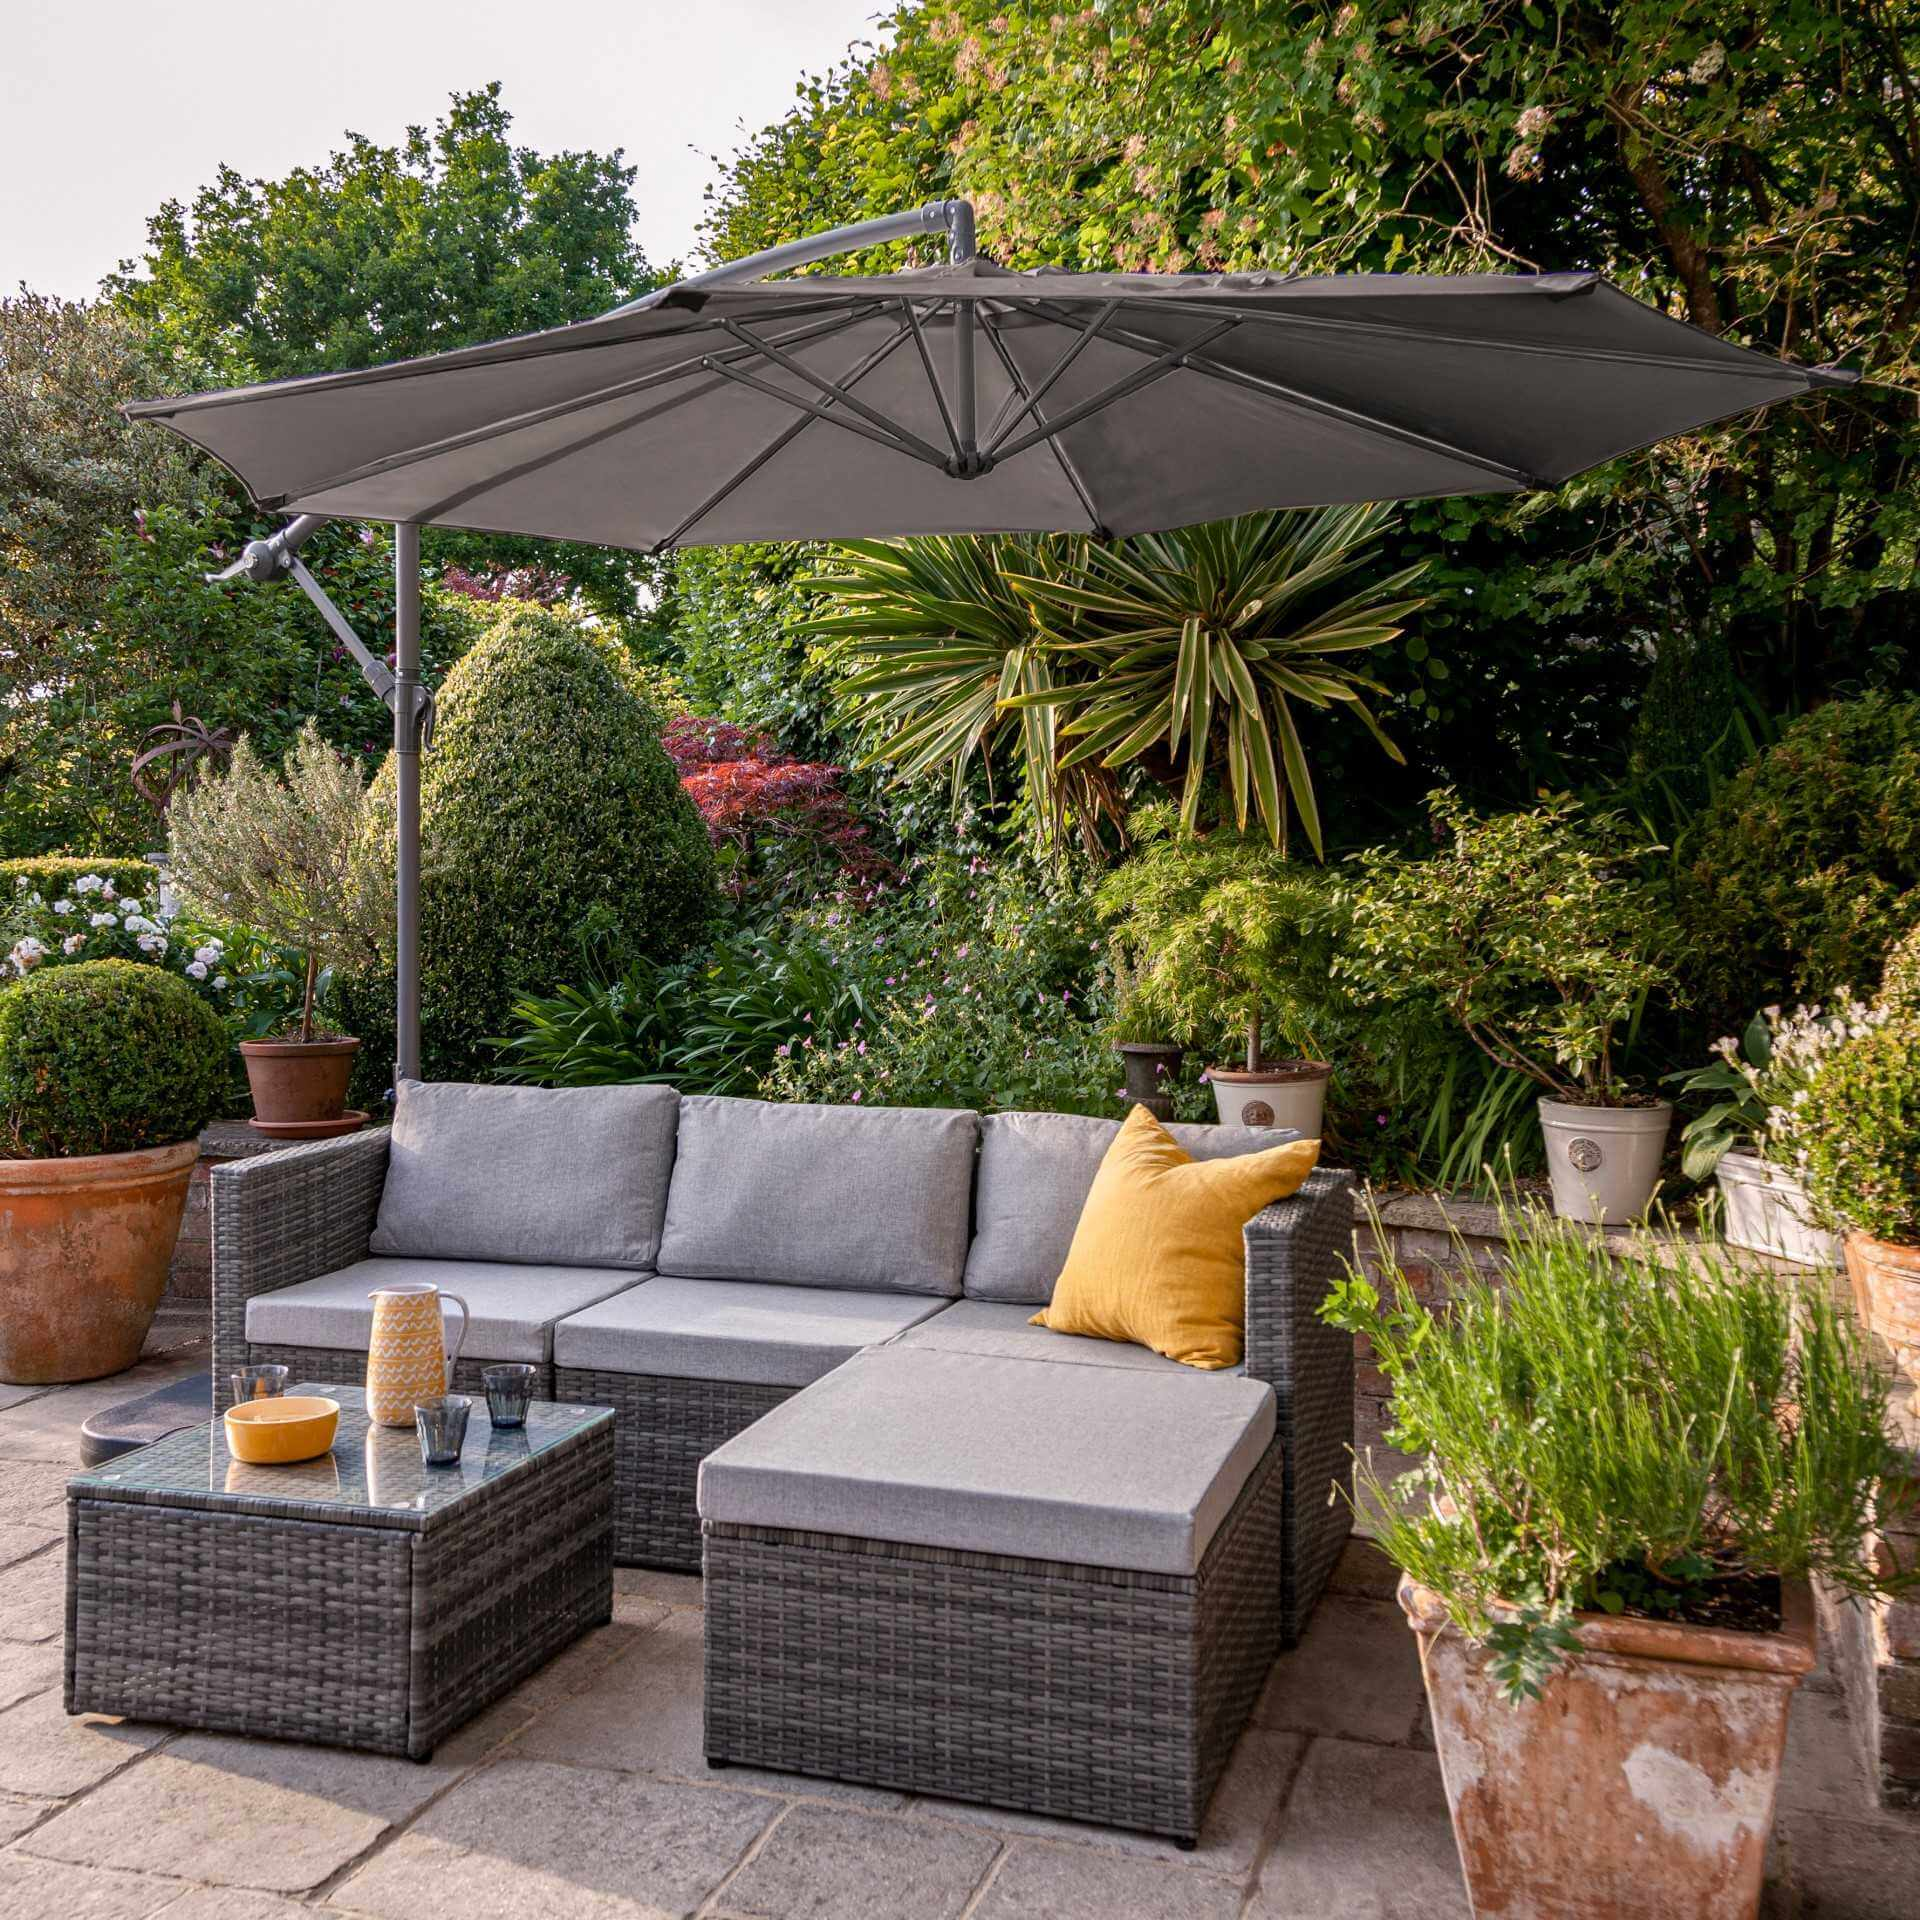 4 Seater Rattan Corner Sofa Set with Lean Over Parasol and Base - Grey Weave